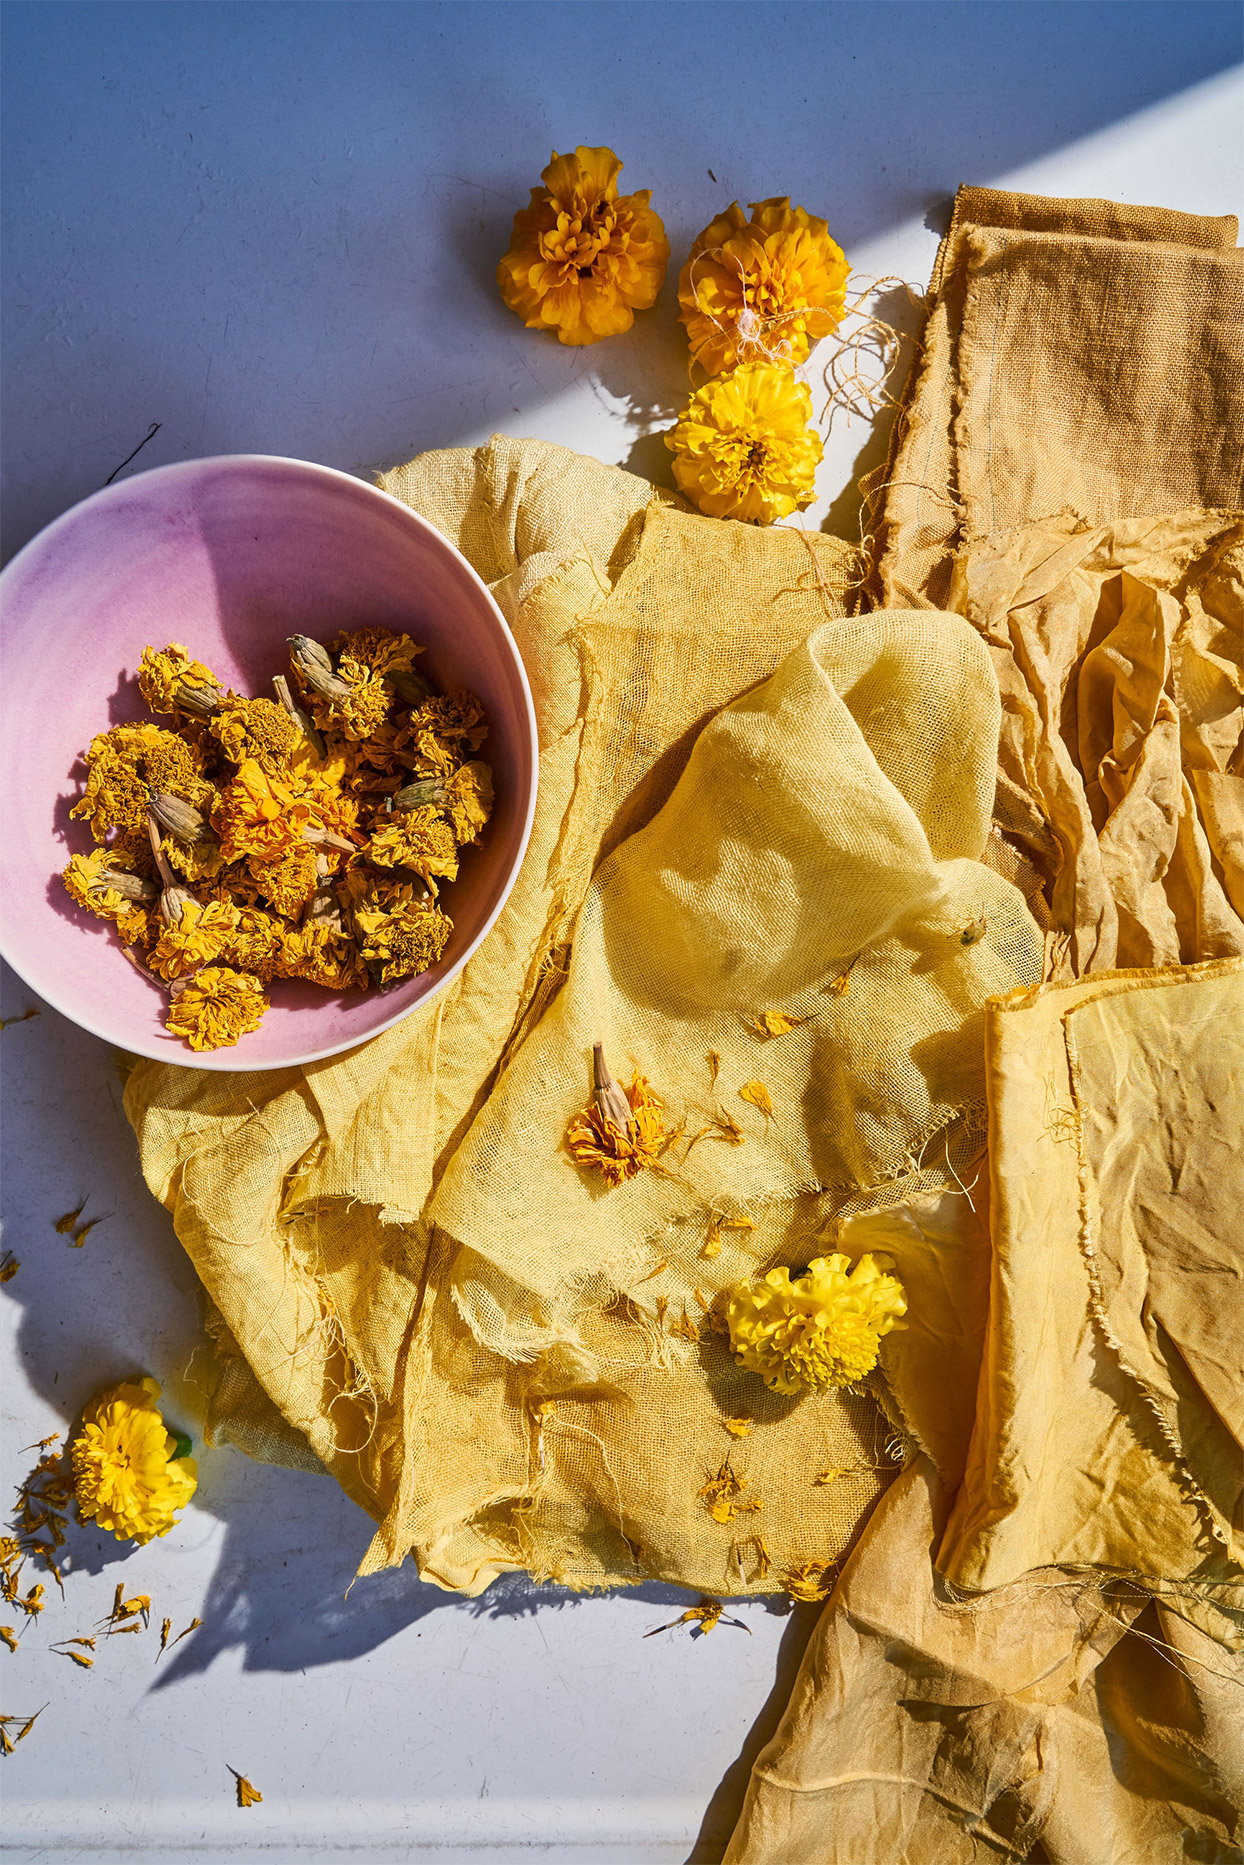 naturally dyed fabrics with dried marigolds in a pink bowl